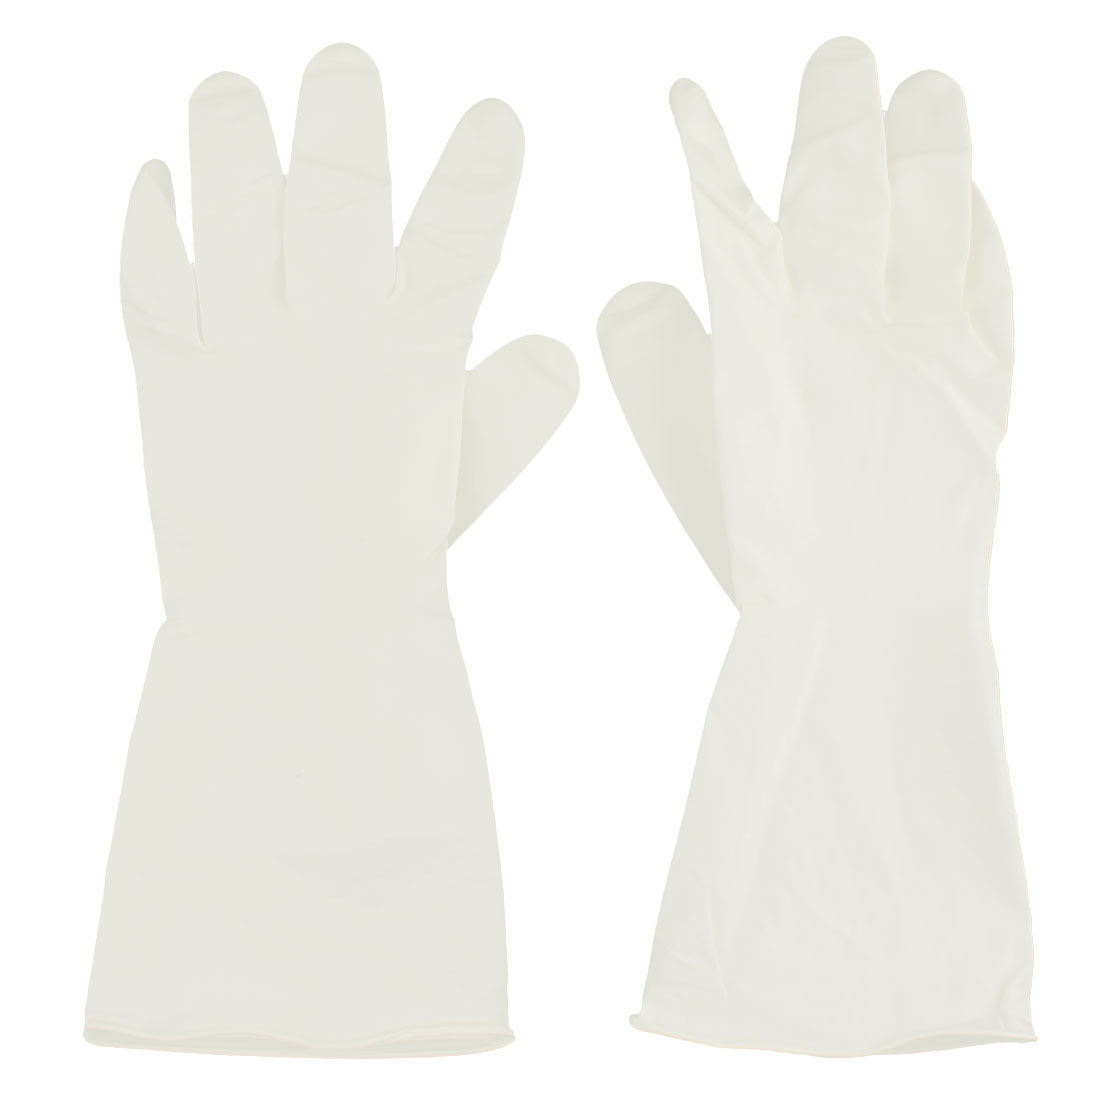 Kitchen Work White Rubber Dish Washing Cleaning Gloves Hand Protector Pair